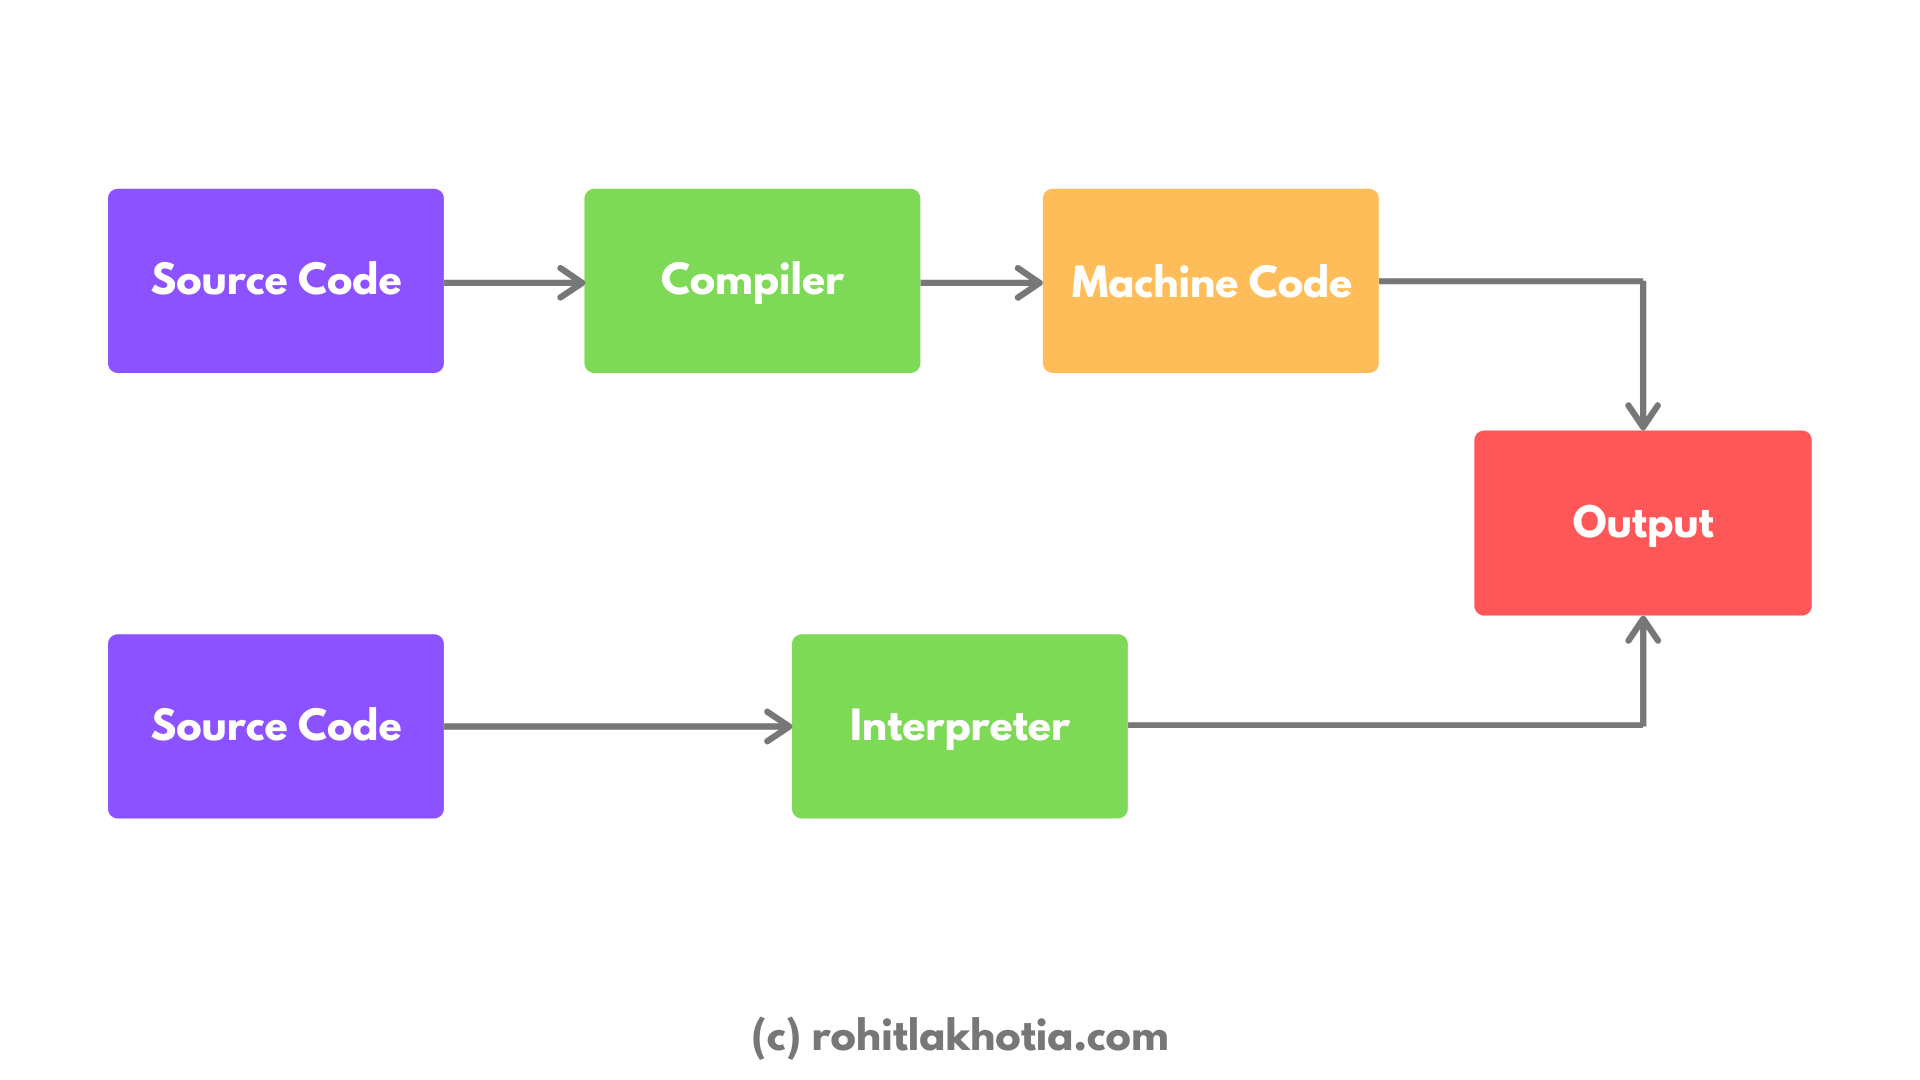 How the source code is transferred to an output